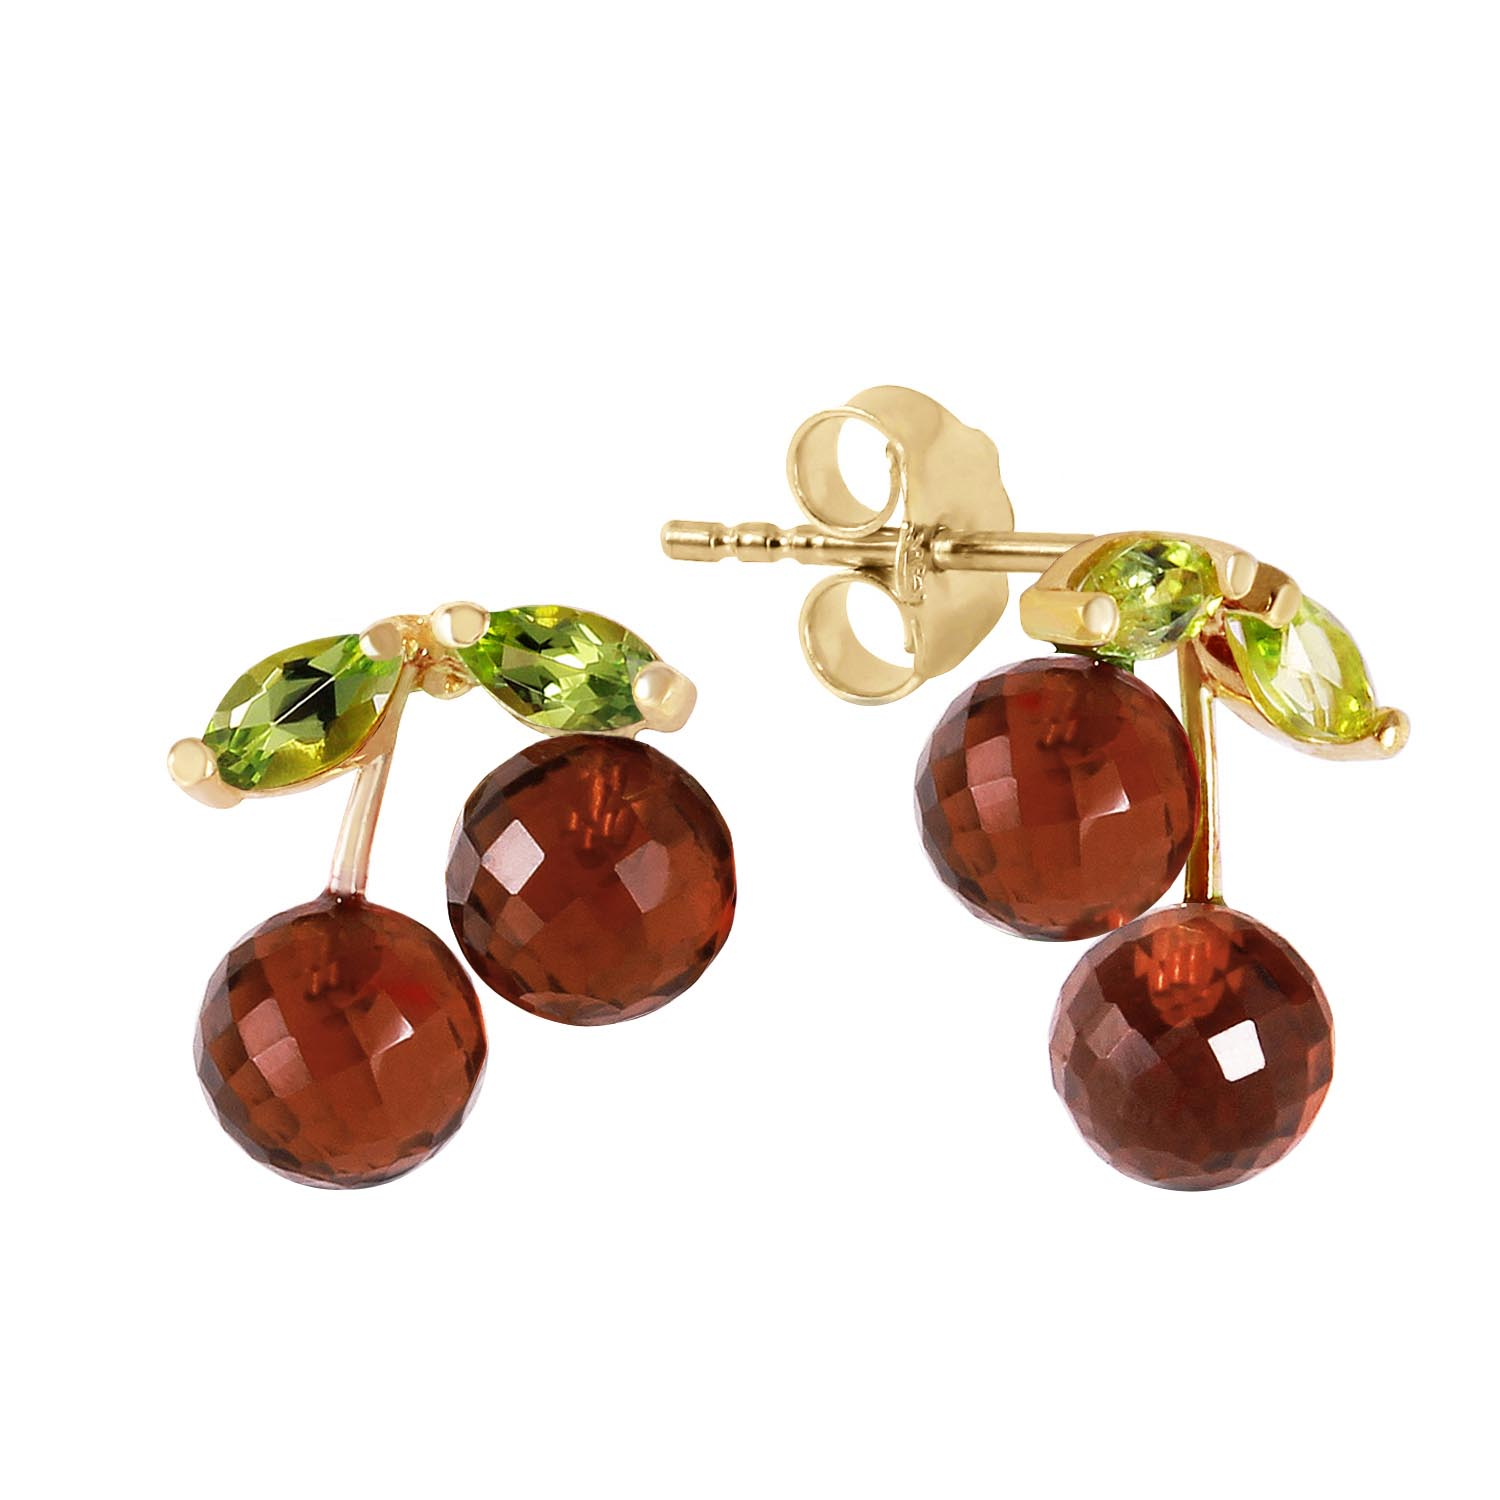 Garnet & Peridot Cherry Drop Stud Earrings in 9ct Gold